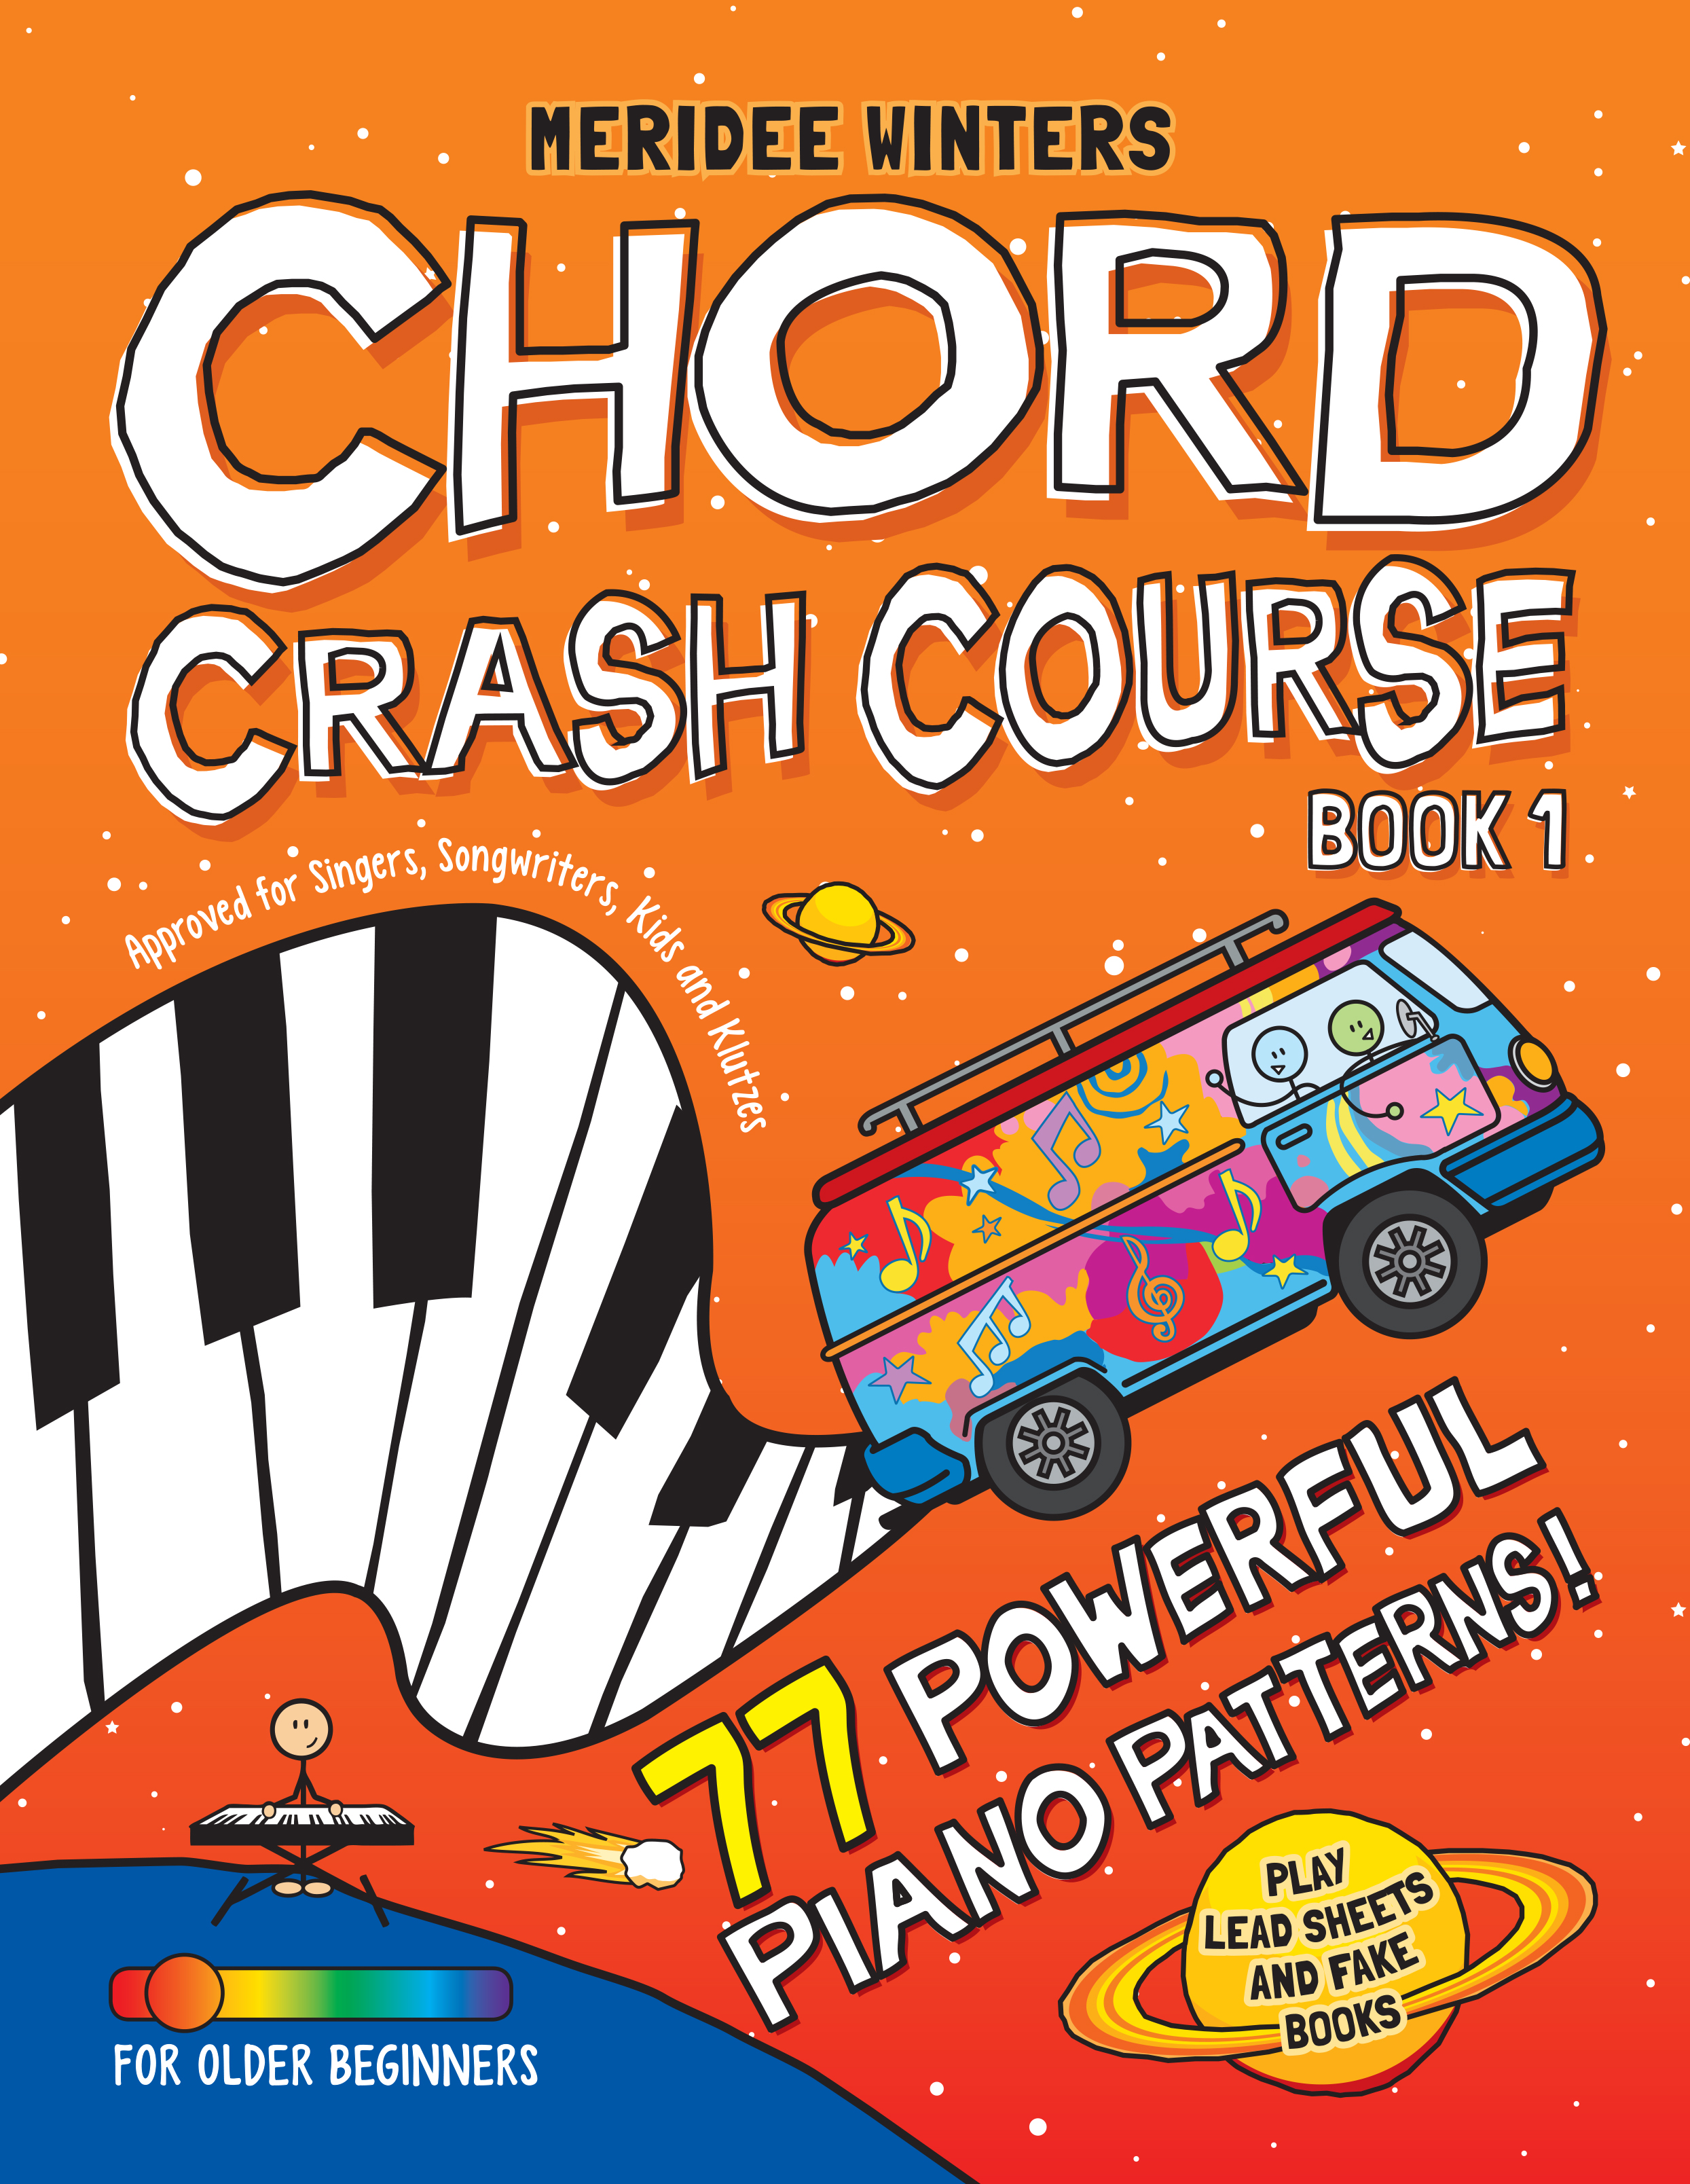 "Chord Crash Course - Meridee's ""Chord Crash Course"" provides piano students with essential musical skills, great results and a strong foundation for their own creativity. Before creating the MW School of Music, Meridee Winters owned a recording studio. She found that many vocalists could not play piano or guitar, and as a result, could not write a song on their own! As a solution, Meridee developed a ""crash course"" that gave them the chord theory and skills they needed, helping hundreds of musicians become better writers and performers. Years later, Meridee began teaching piano to children, and found that her ""Chord Crash Course"" was a great tool for students of all ages. The end result is a music book unlike any other, designed to provide you with great results and a strong foundation for your own creativity."